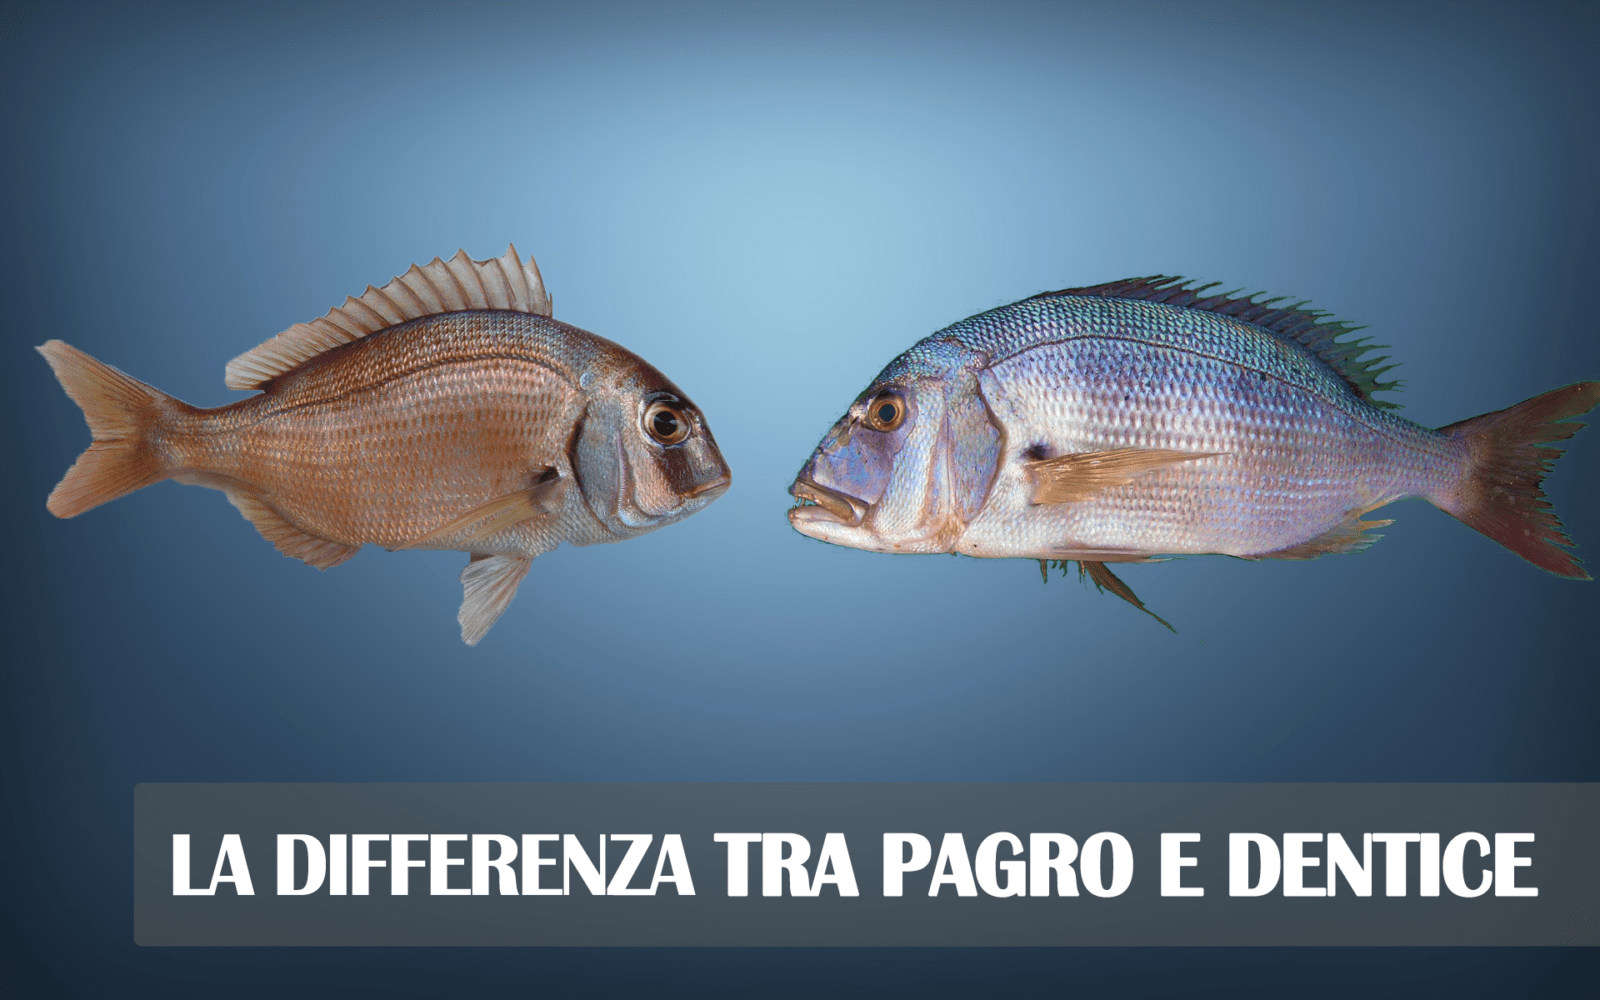 La differenza tra dentice e pagro - Come cucinare il dentice ...